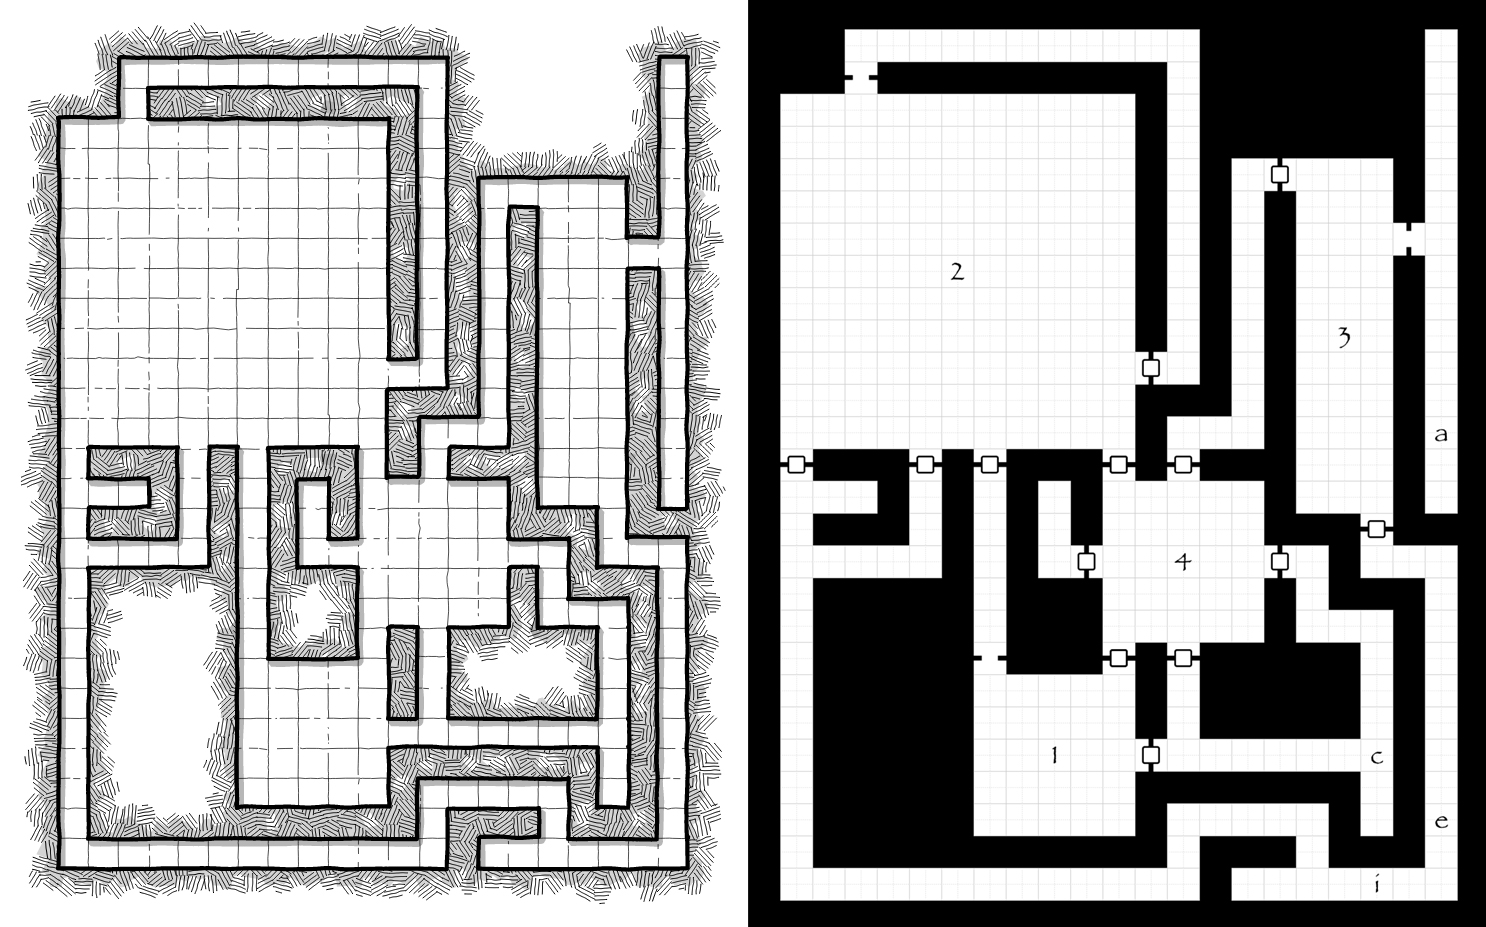 Import Generated Dungeons